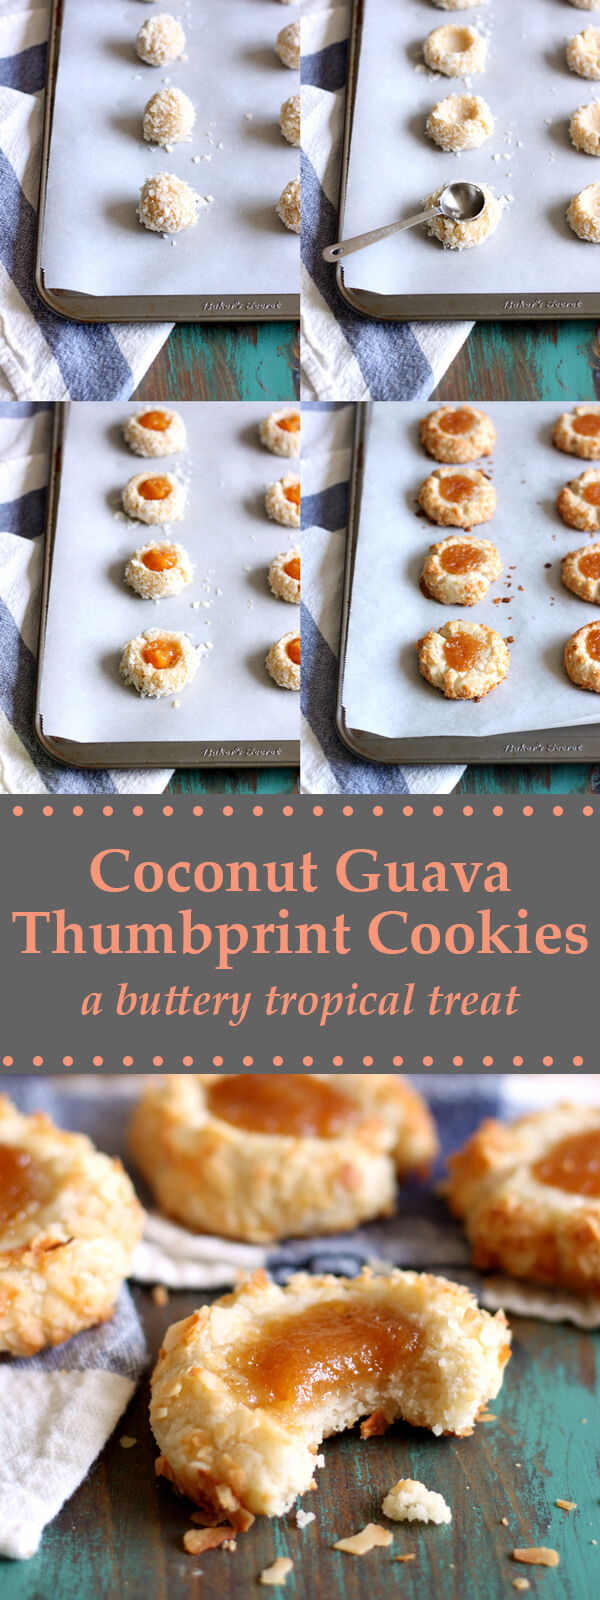 These Coconut Guava Thumbprint Cookies are like buttery little tropical gems covered in coconut flakes and topped with a dollop of guava jam! | wildwildwhisk.com